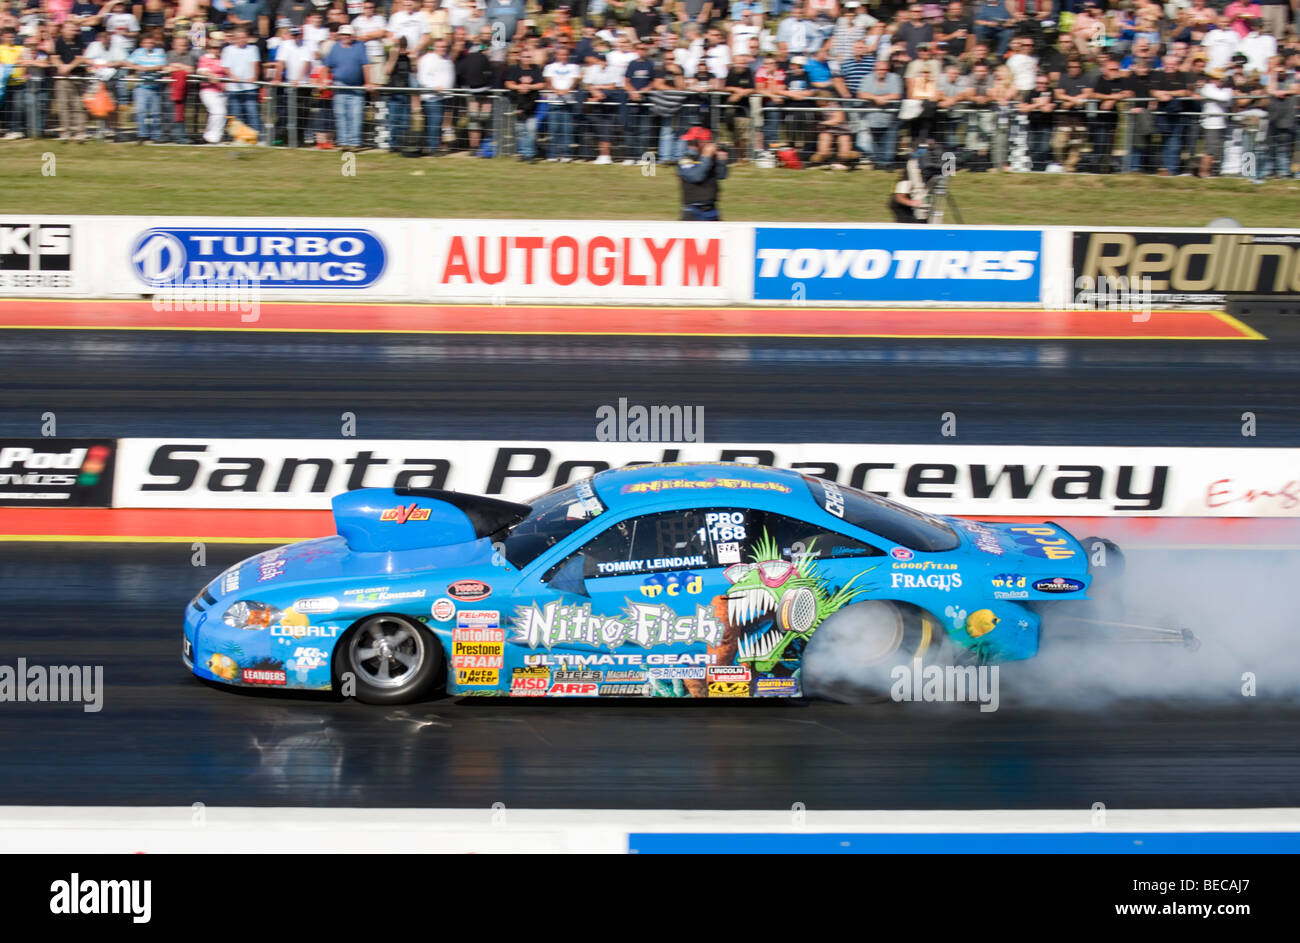 fia pro stock dragster driven by tommy leindahl at the fia european stock photo  royalty free